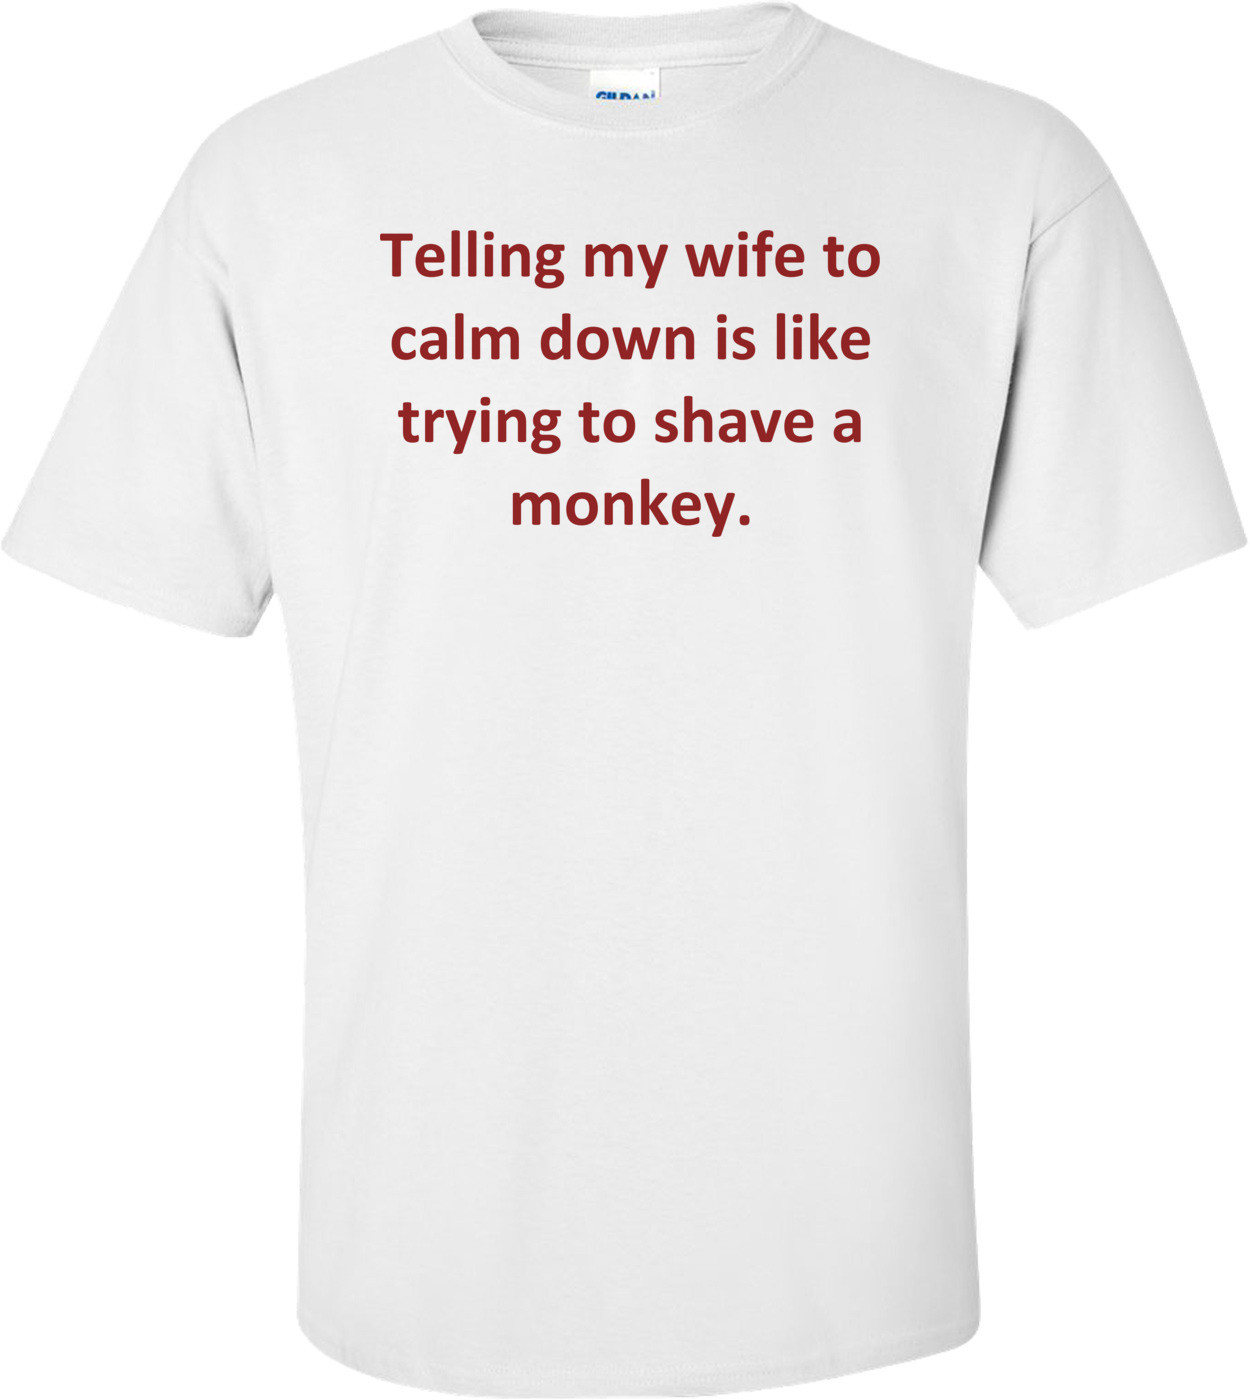 Telling my wife to calm down is like trying to shave a monkey. Shirt